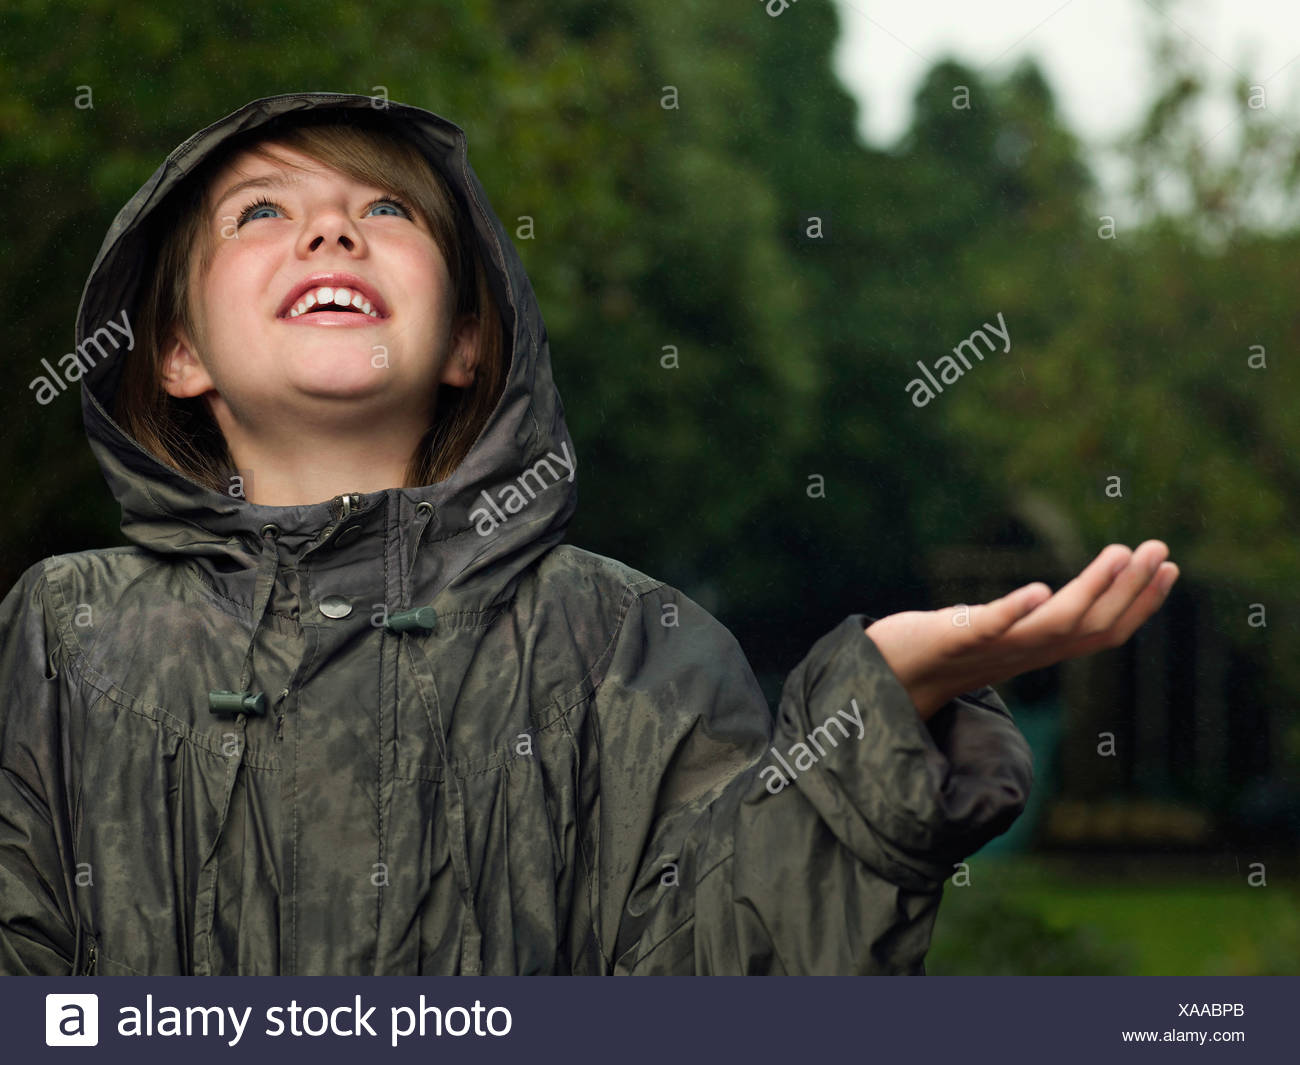 Girl holds hand out to catch rain - Stock Image